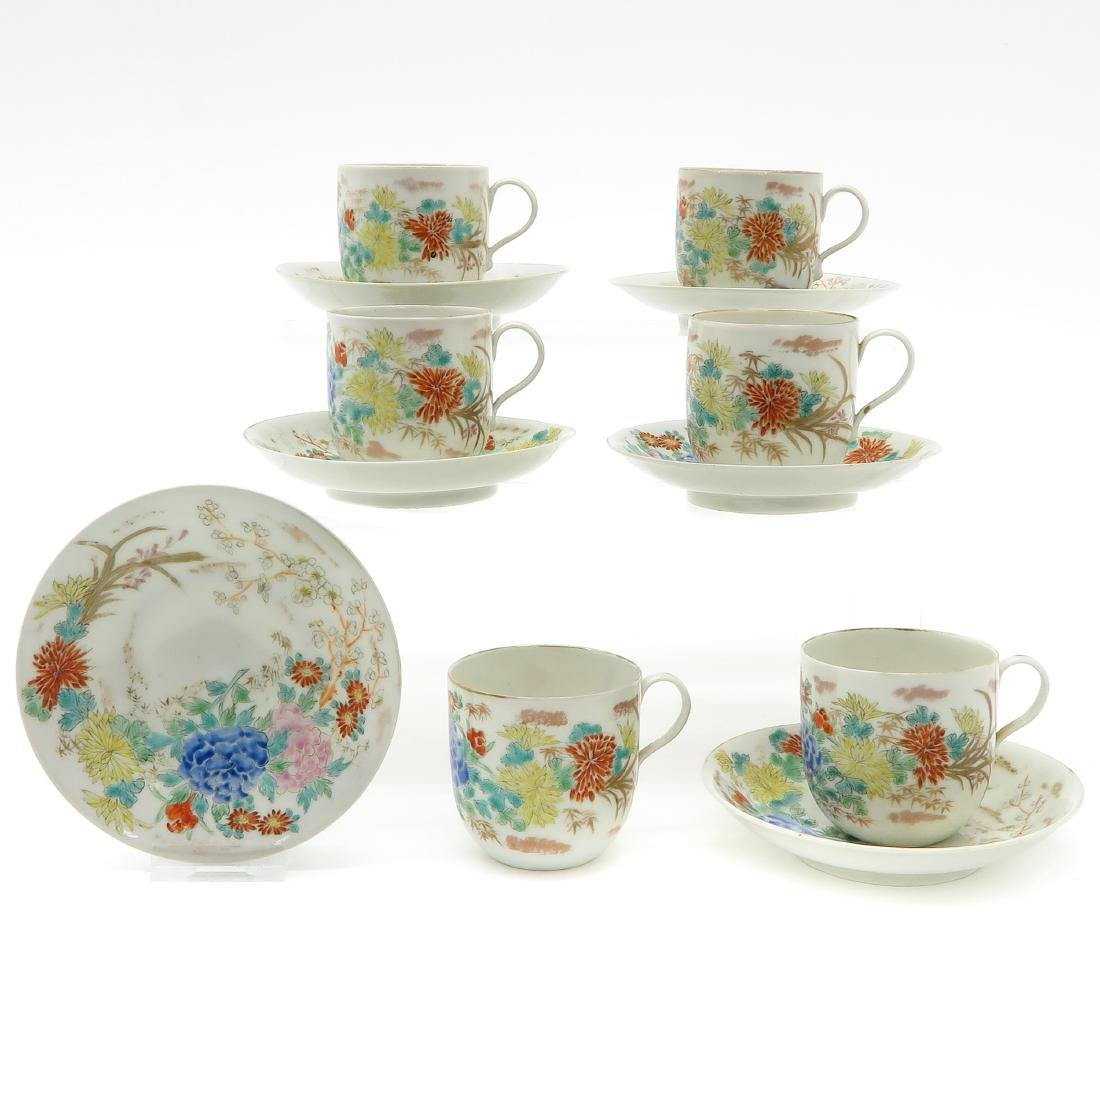 Lot of 6 Cups and Saucers